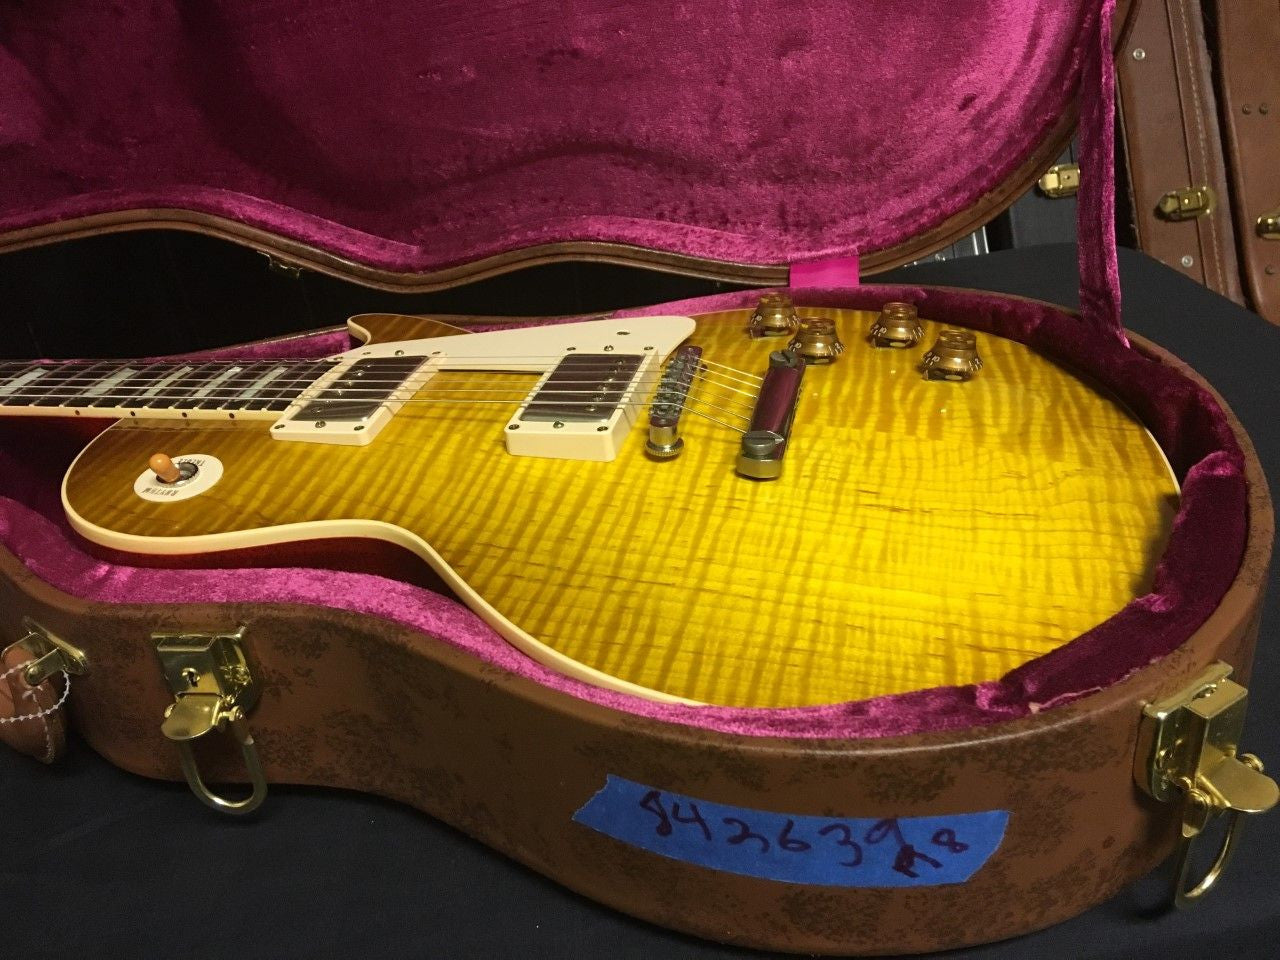 Gibson Les Paul R8 Lemon Burst 842639 ****SOLD****